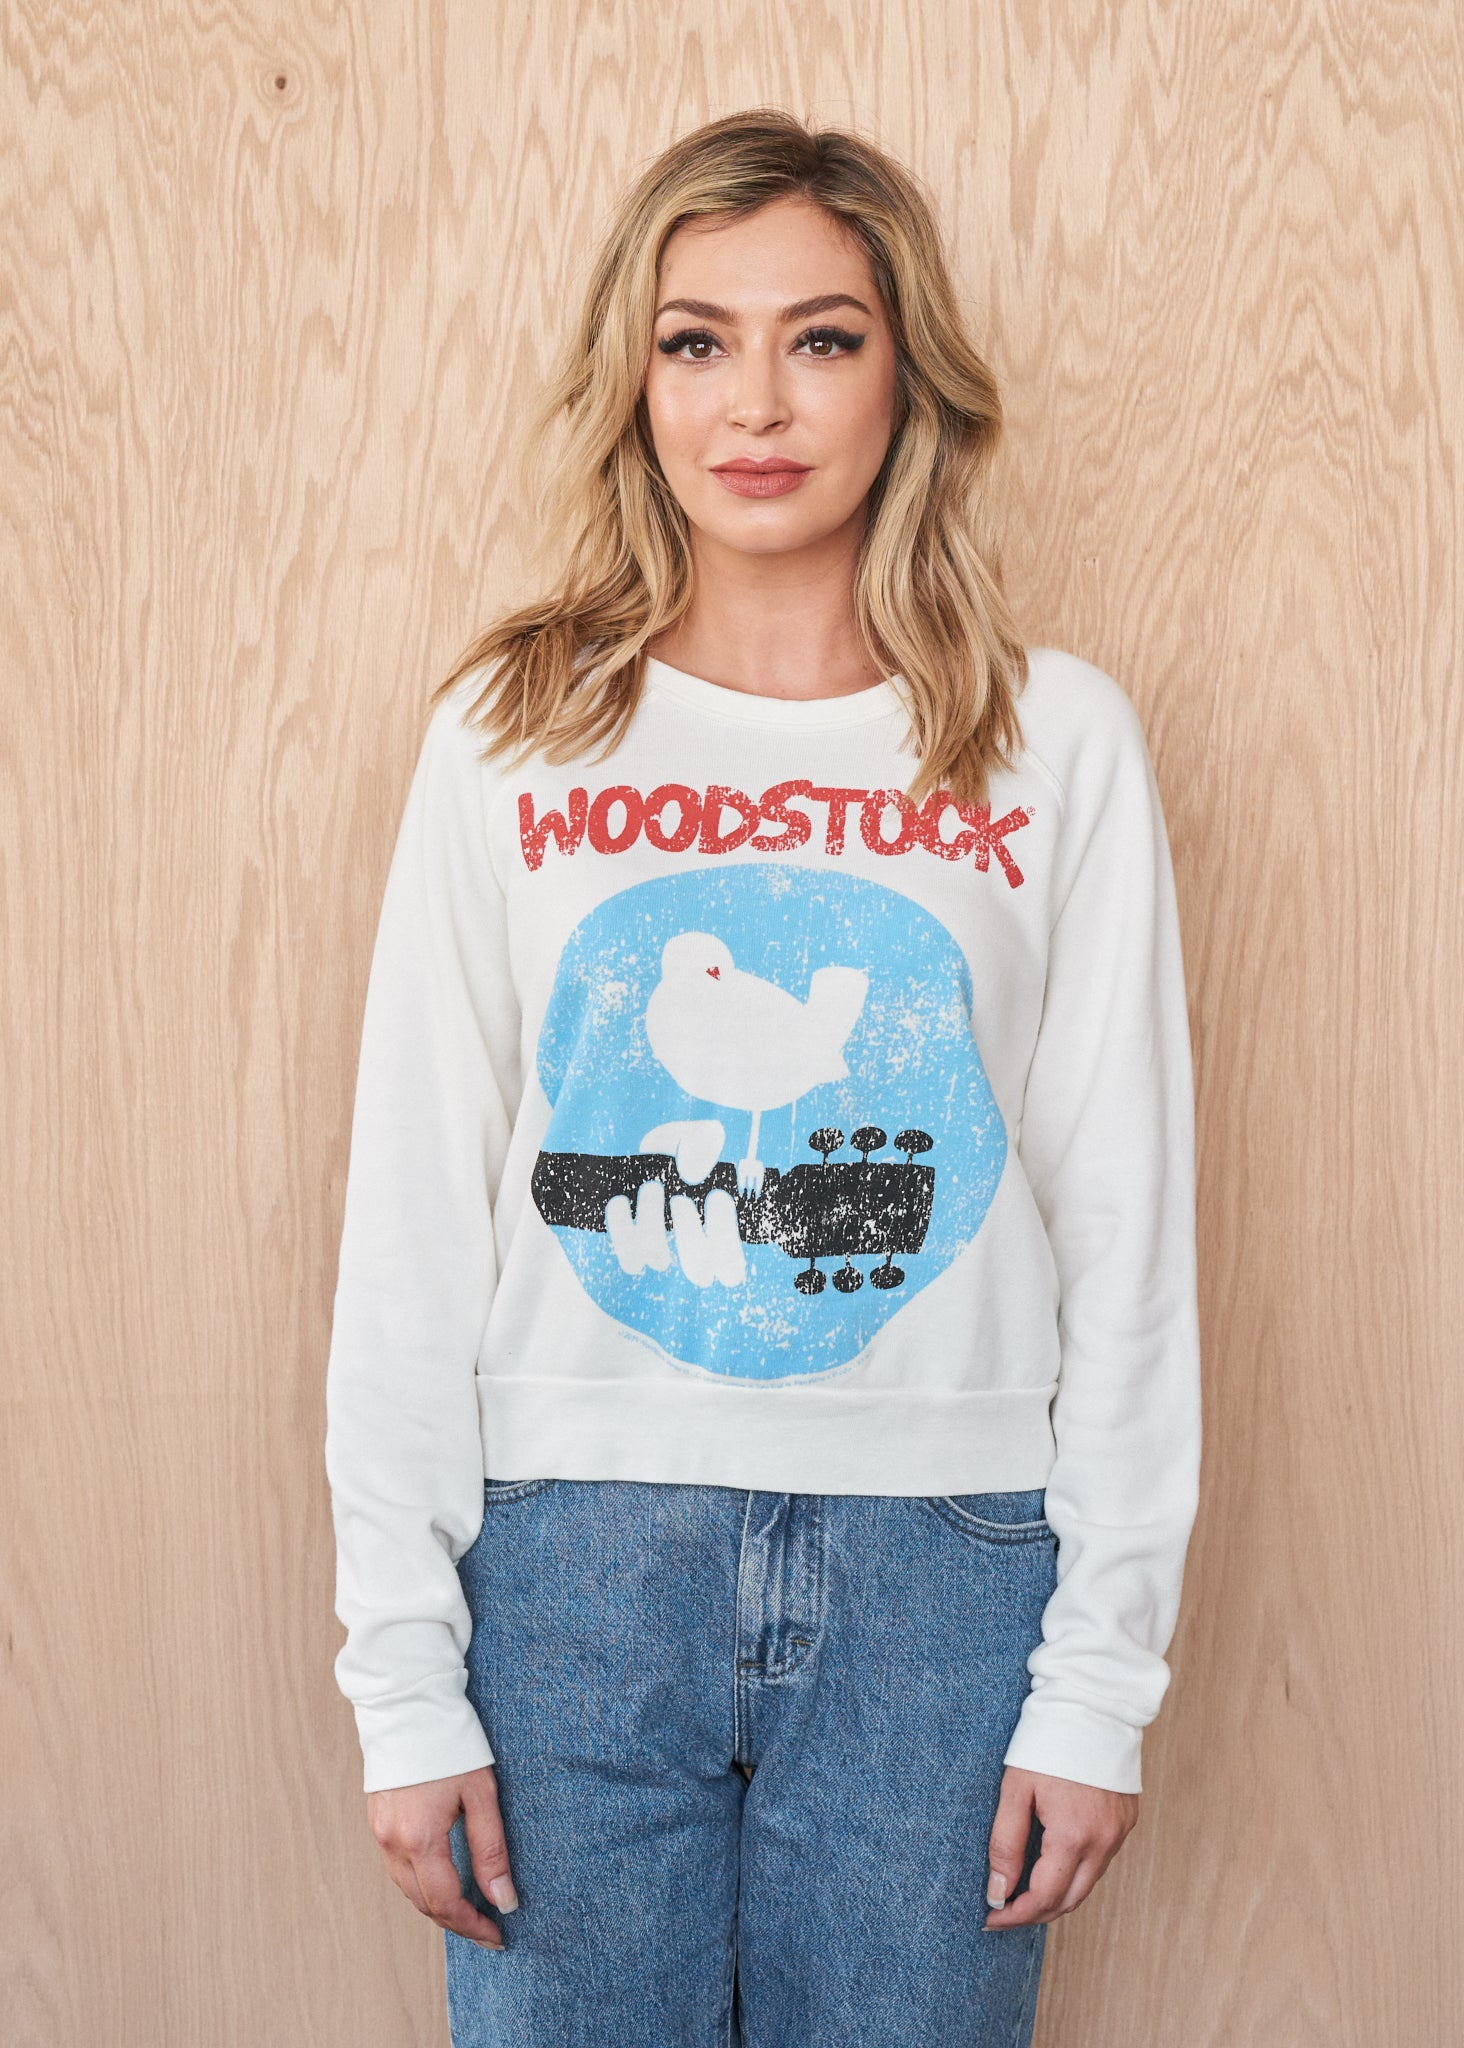 Woodstock Women's Sweatshirt - Women's Sweatshirt - Midnight Rider